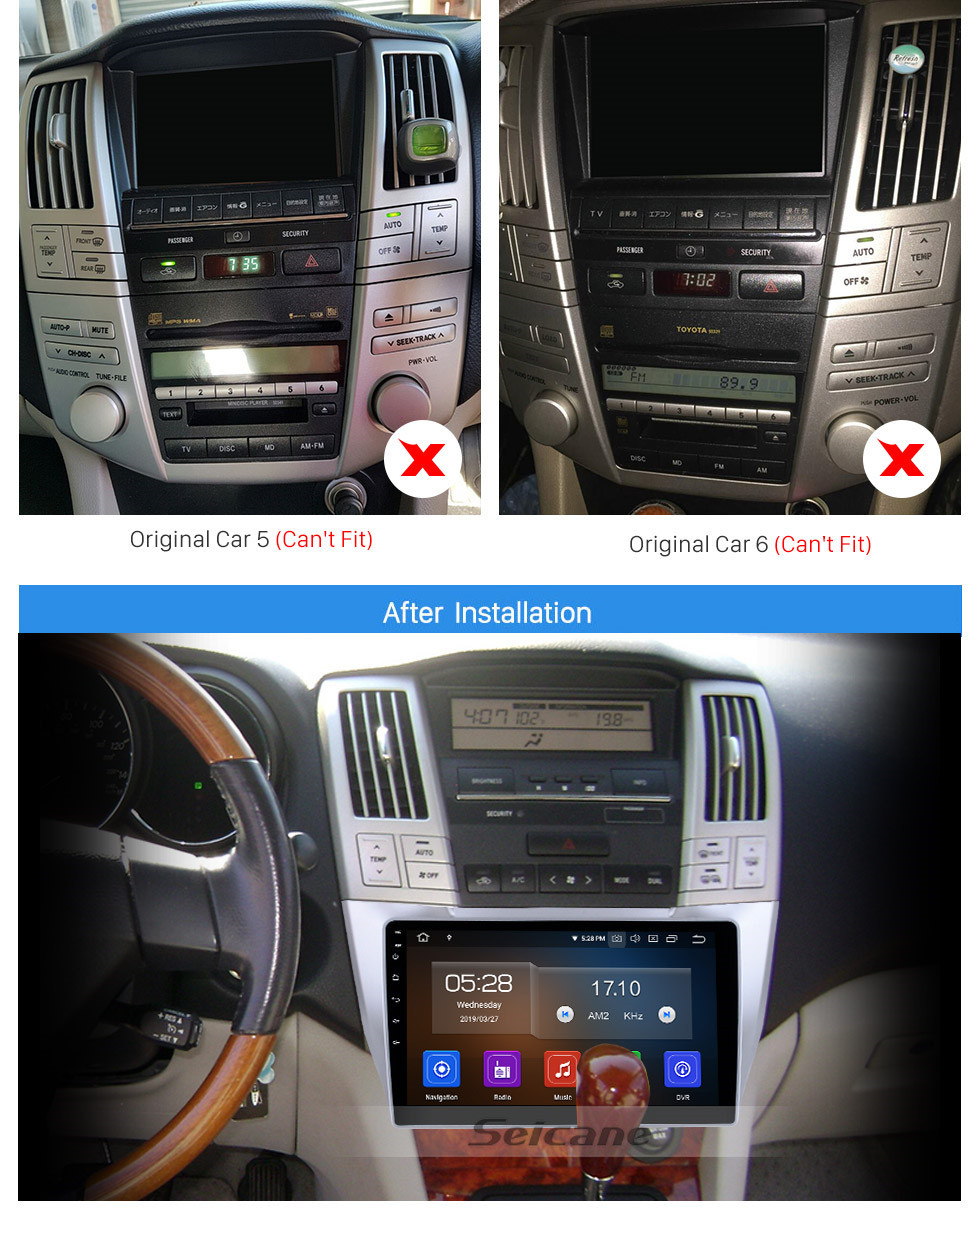 Seicane OEM 10.1 inch Android 10.0 Radio for 2003-2010 Lexus RX300 RX330 RX350 Bluetooth HD Touchscreen GPS Navigation AUX Carplay support TPMS